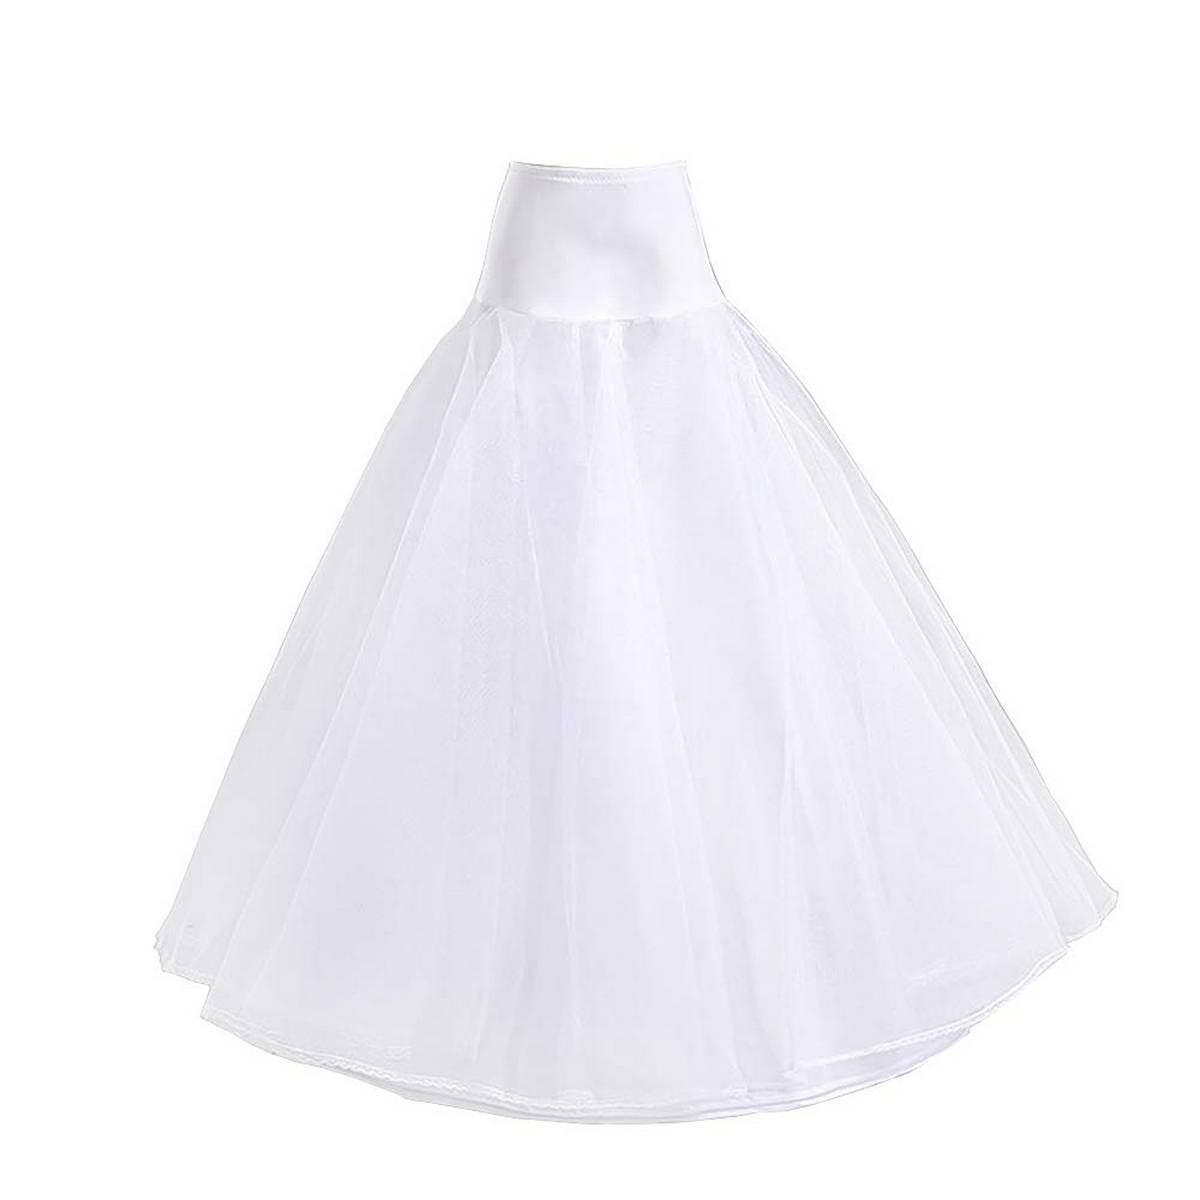 Stitched cancan under skirt -Length 39-Gear 116 inches-4 layers (white)